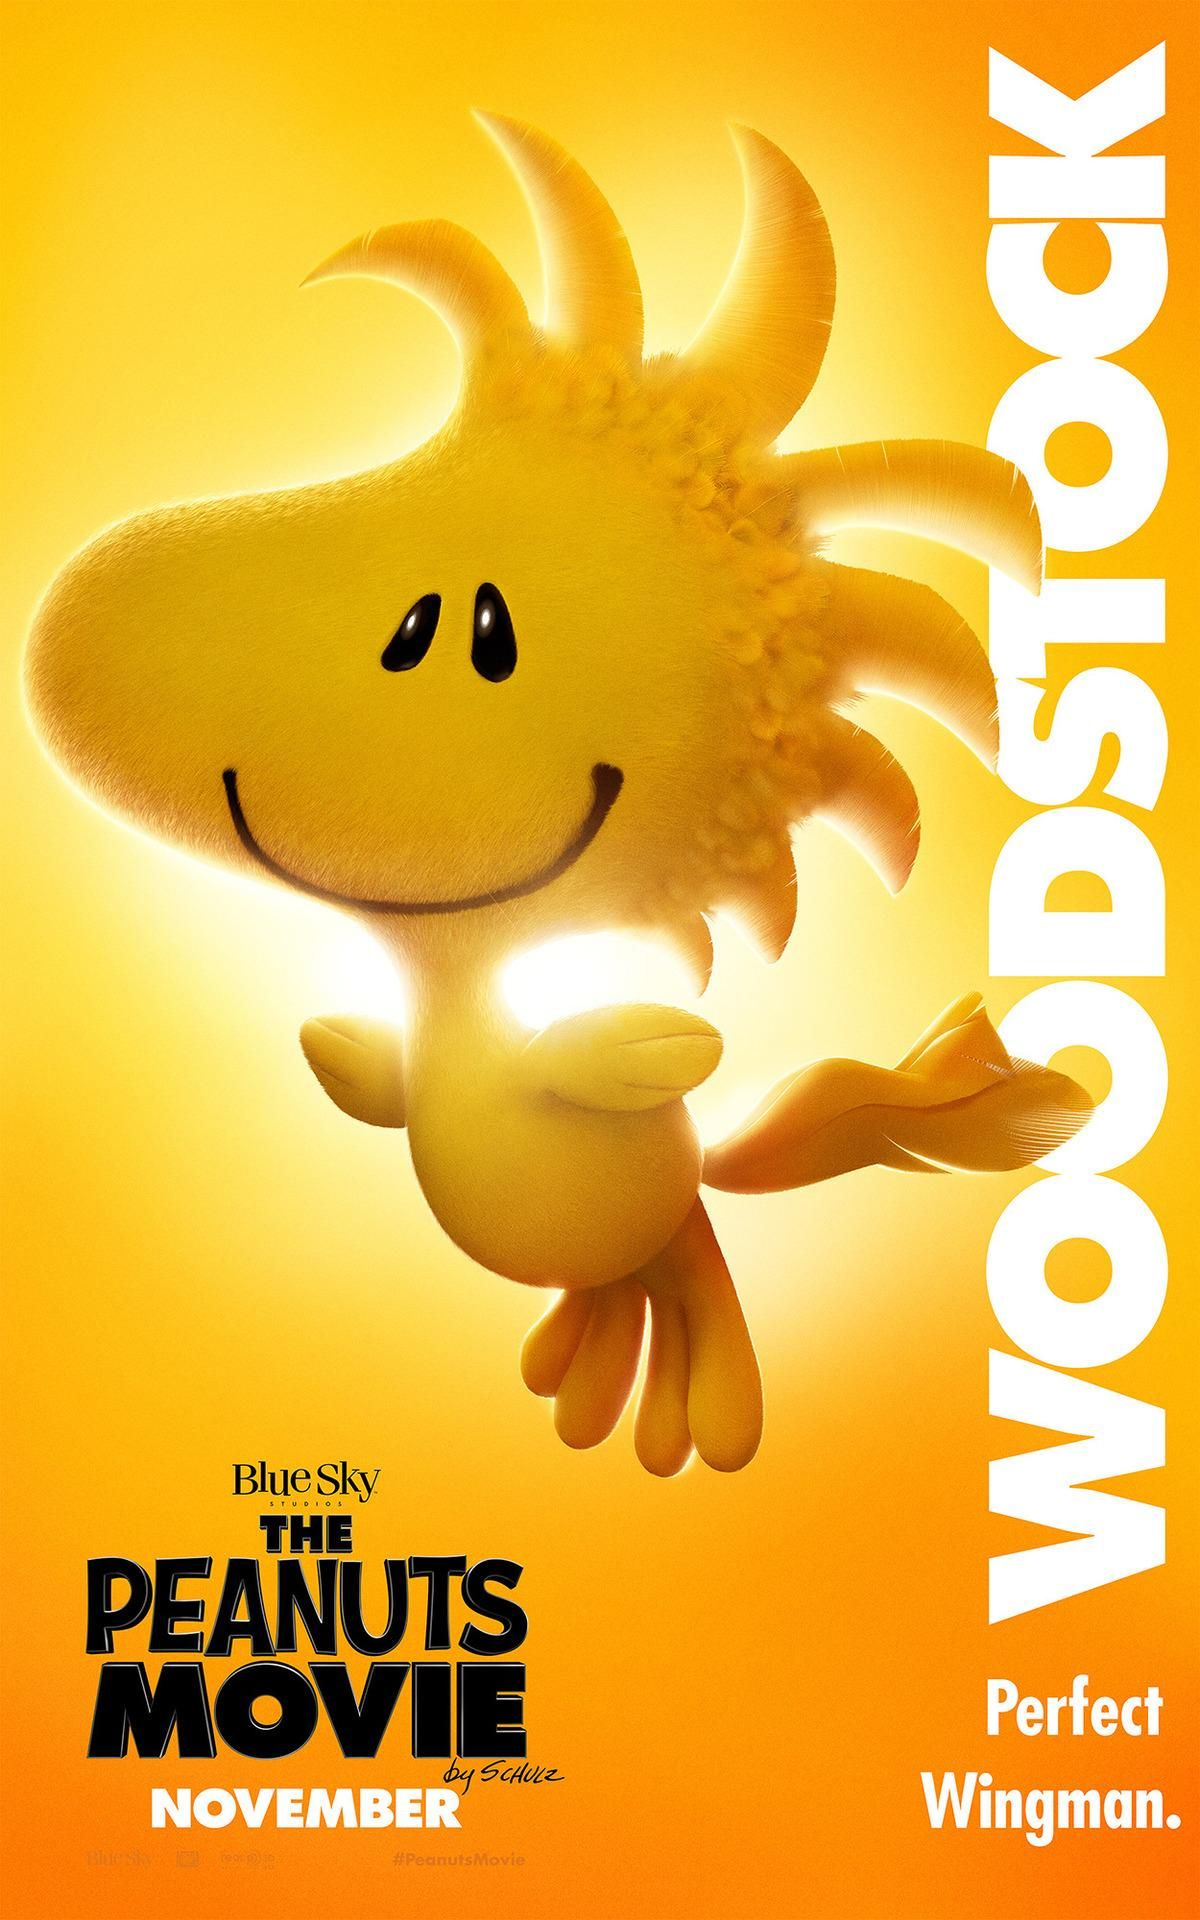 Learn To Draw The Peanuts Woodstock For Draw A Bird Day Woodstock Peanuts Peanuts Movie Snoopy And Woodstock